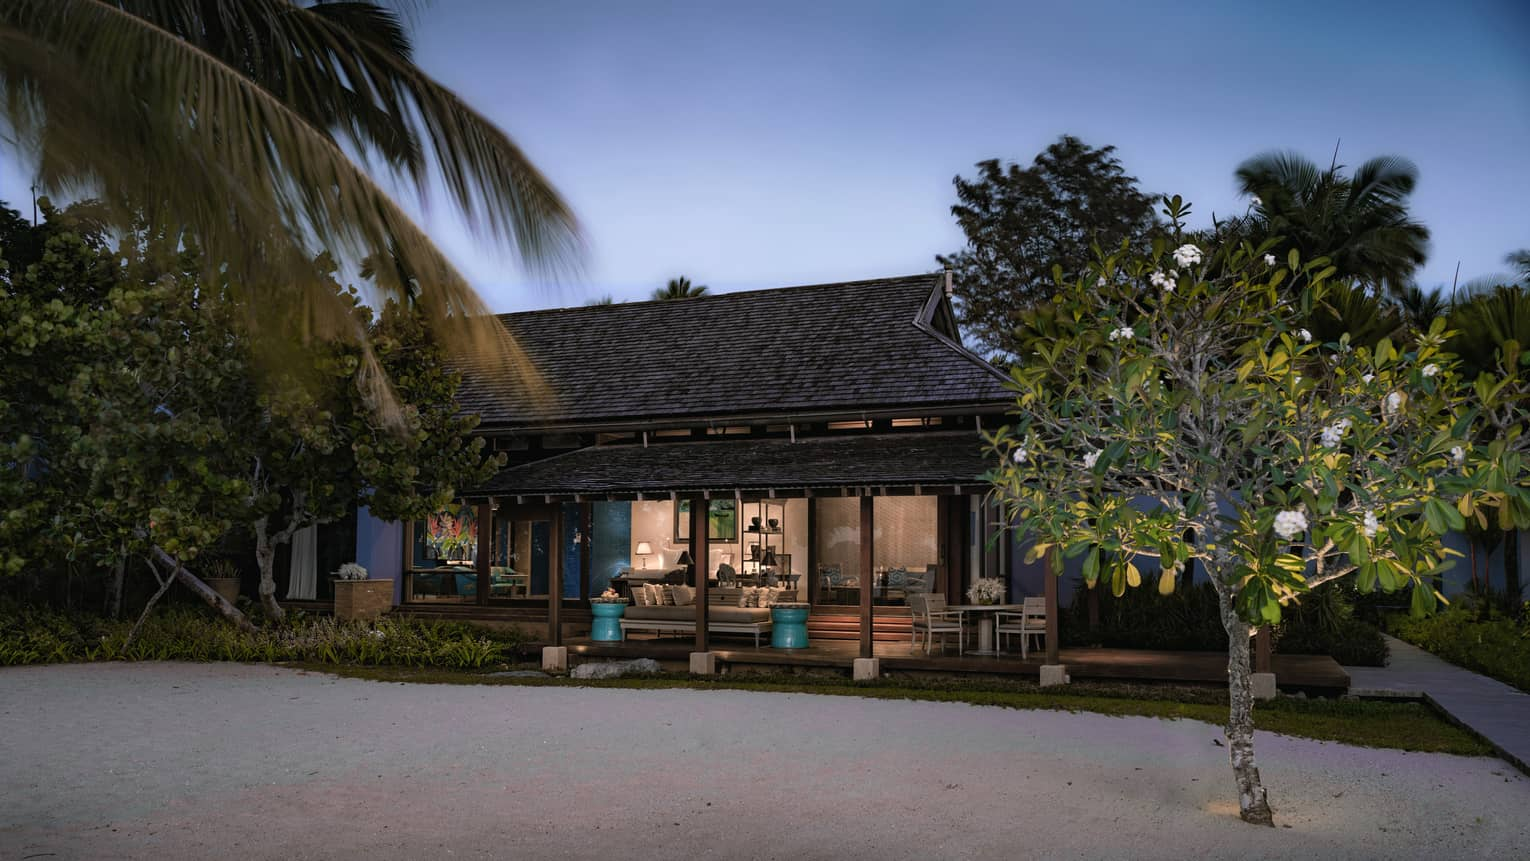 a resort bungalow surrounded by lush greenery